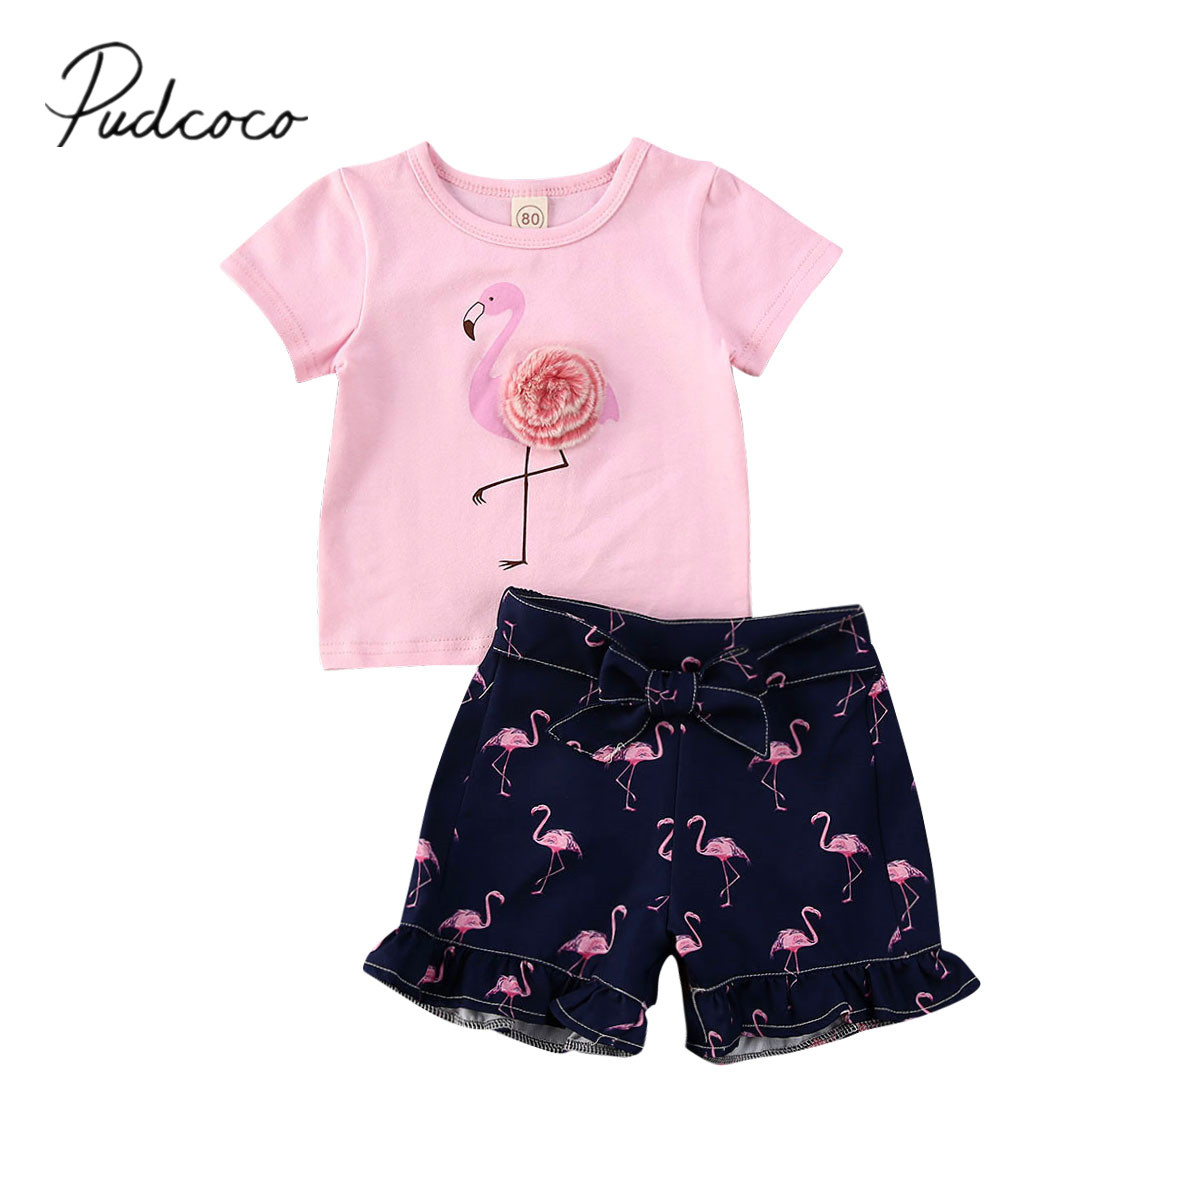 2pcs Toddler Baby Girl Cartoon Duck Tops Bow Letter Pant Trousers Outfit Clothes